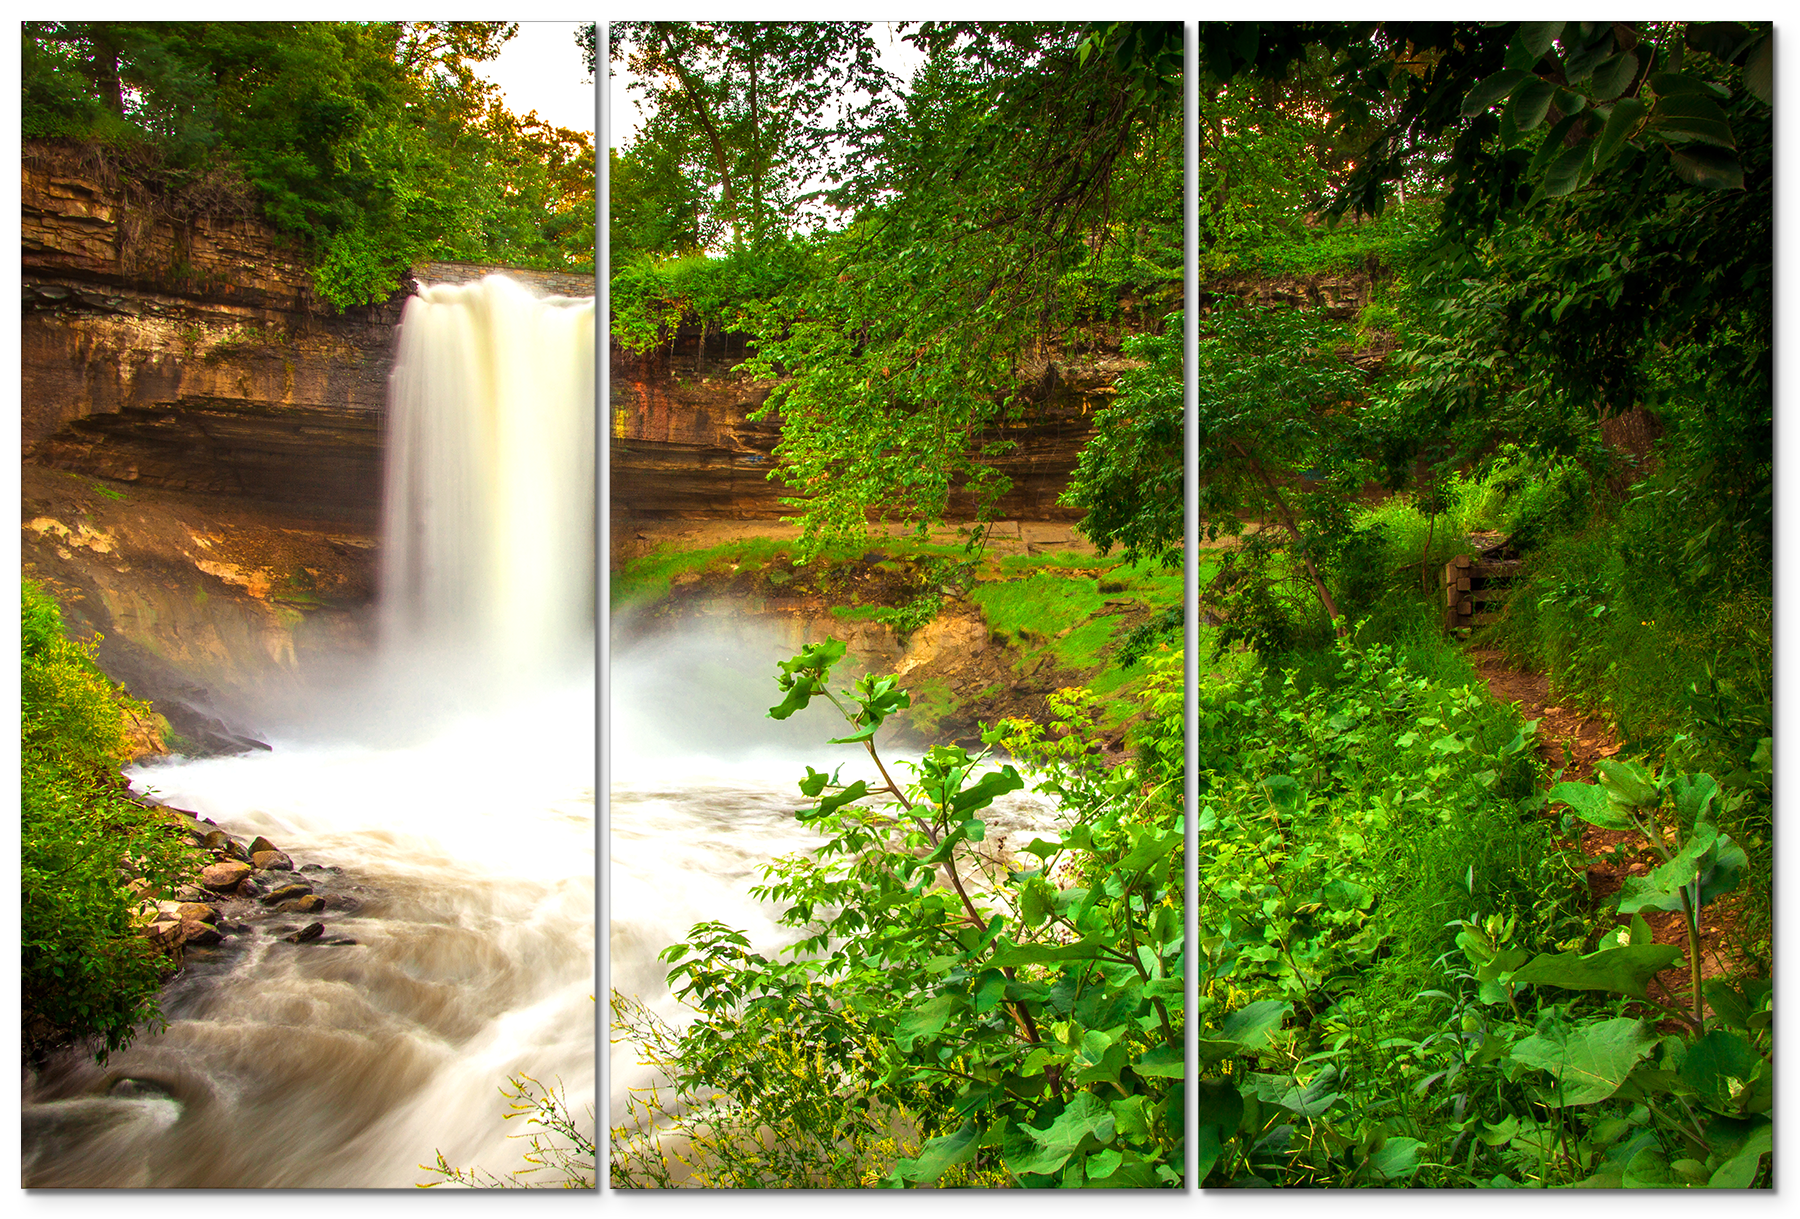 Pictures of waterfalls 2 ae2e7u